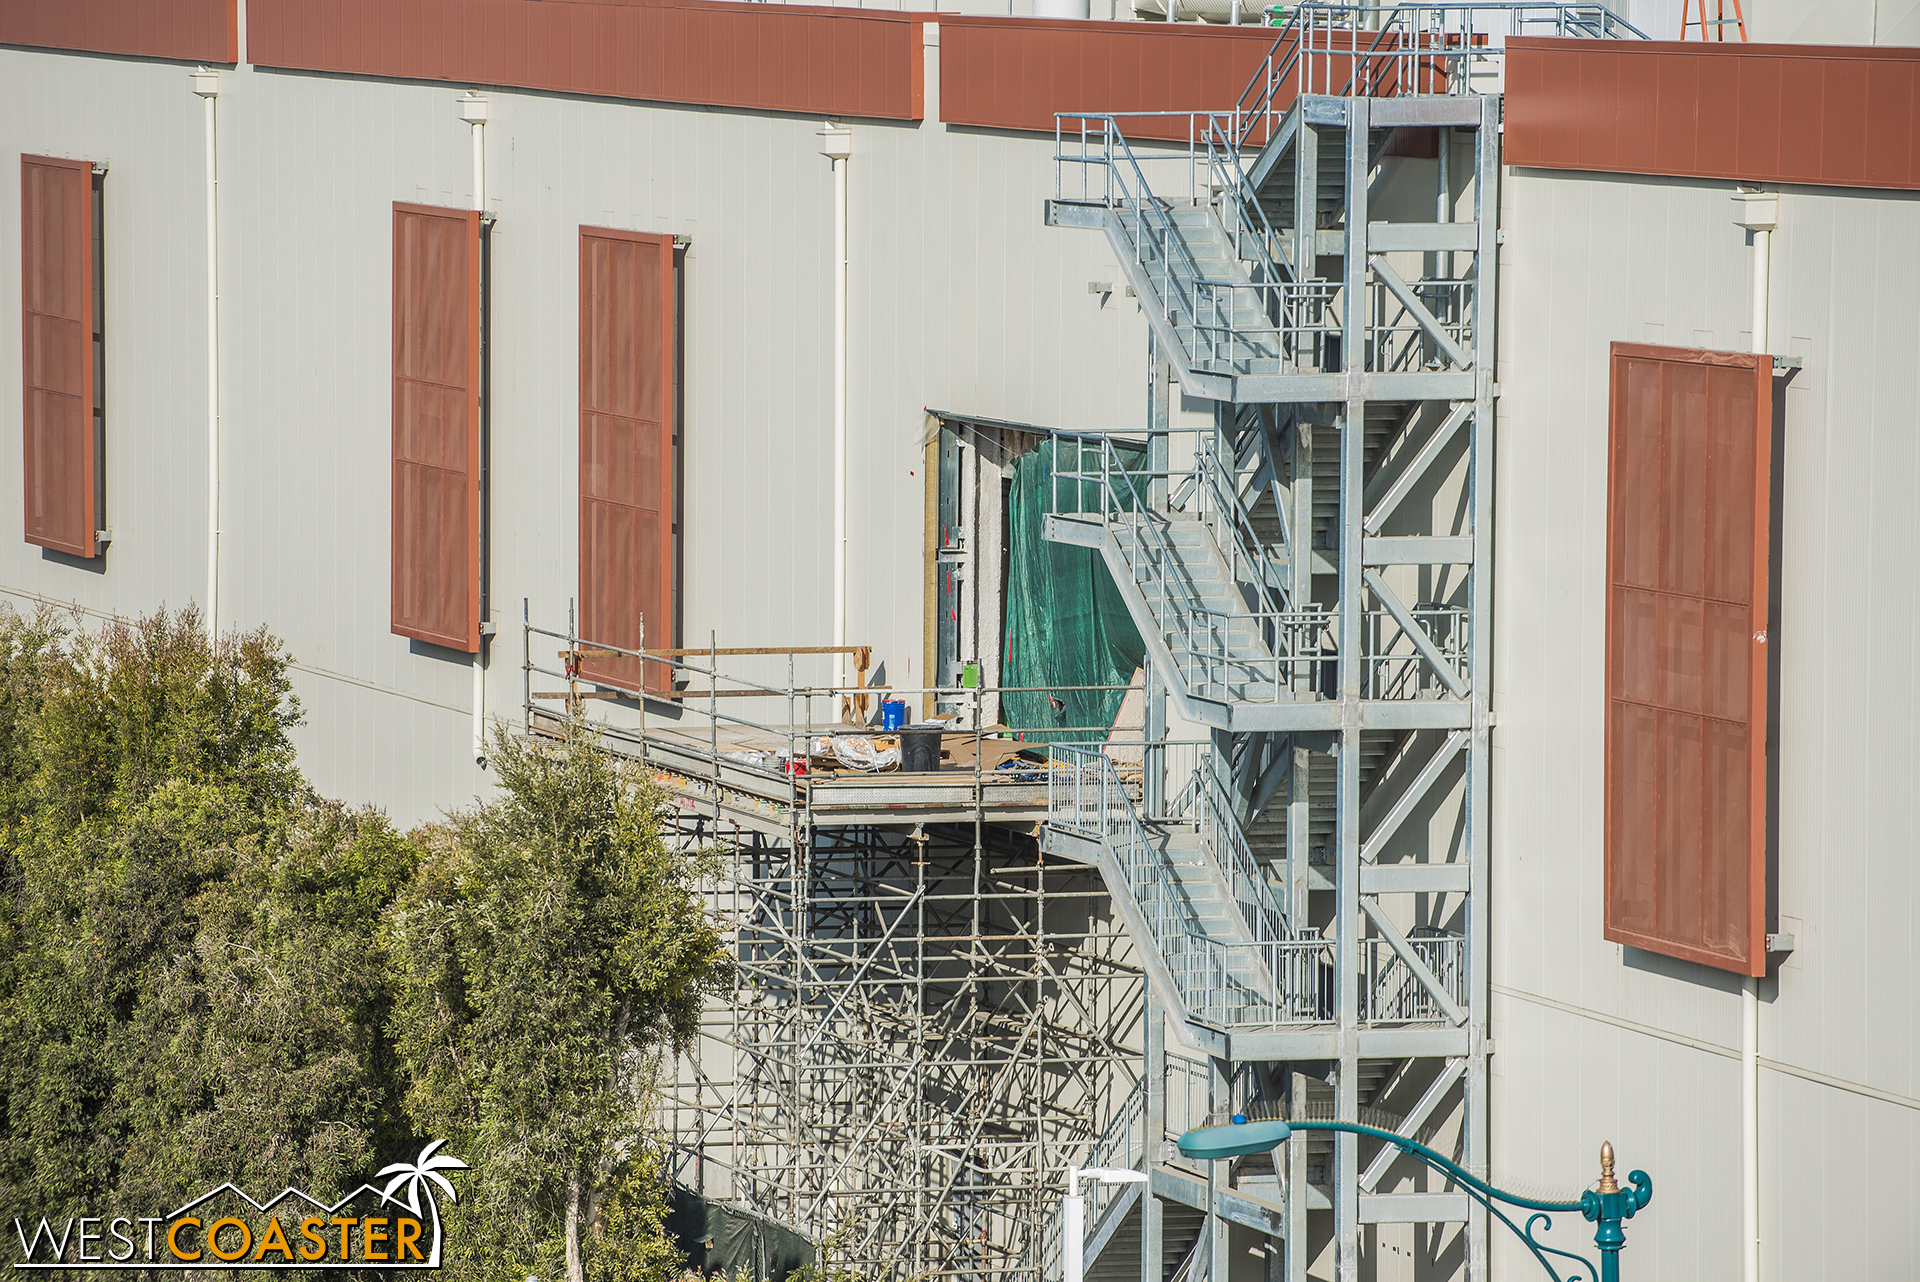 Construction of the First Order attraction continues inside, where we can see absolutely nothing…